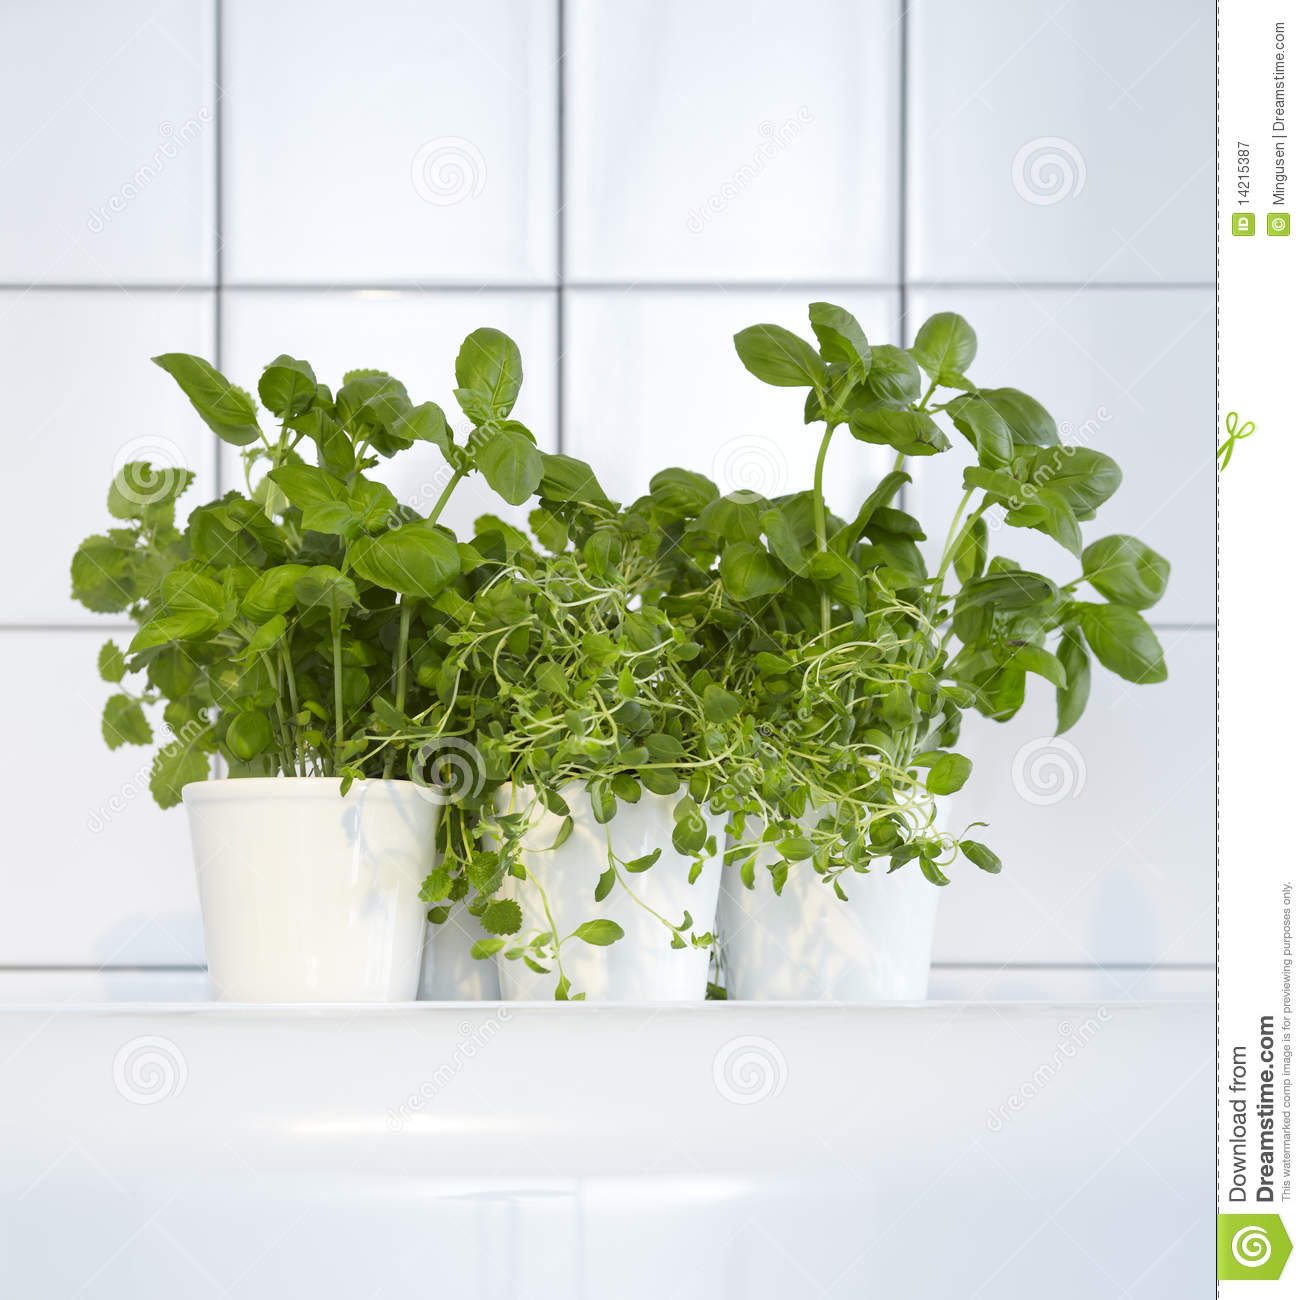 Kitchen Herbs: Fresh Herbs In Kitchen Stock Image. Image Of Basil